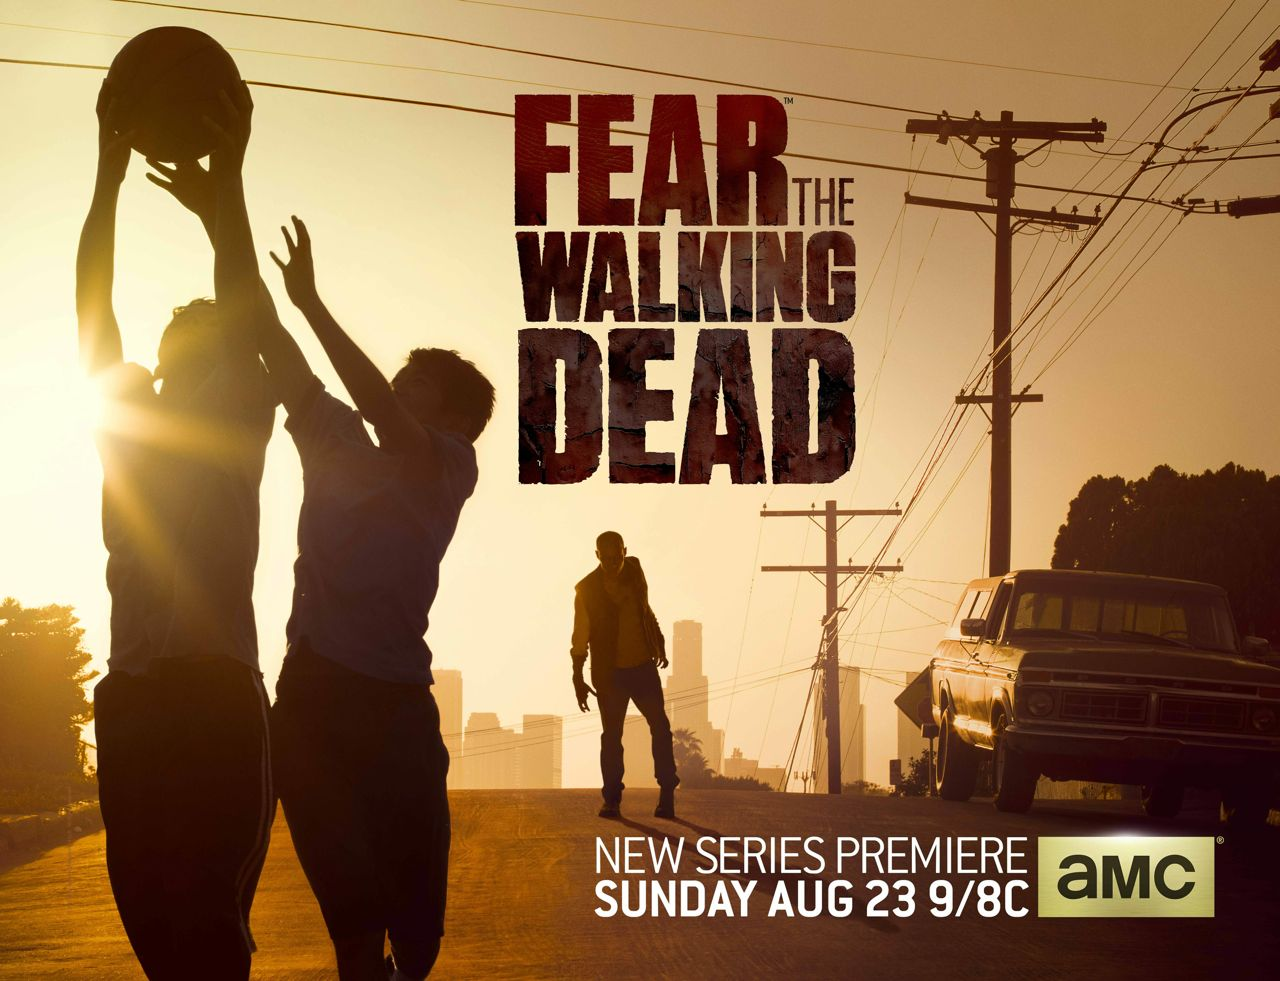 Fear the walking dead new poster is game scifinow the world s best